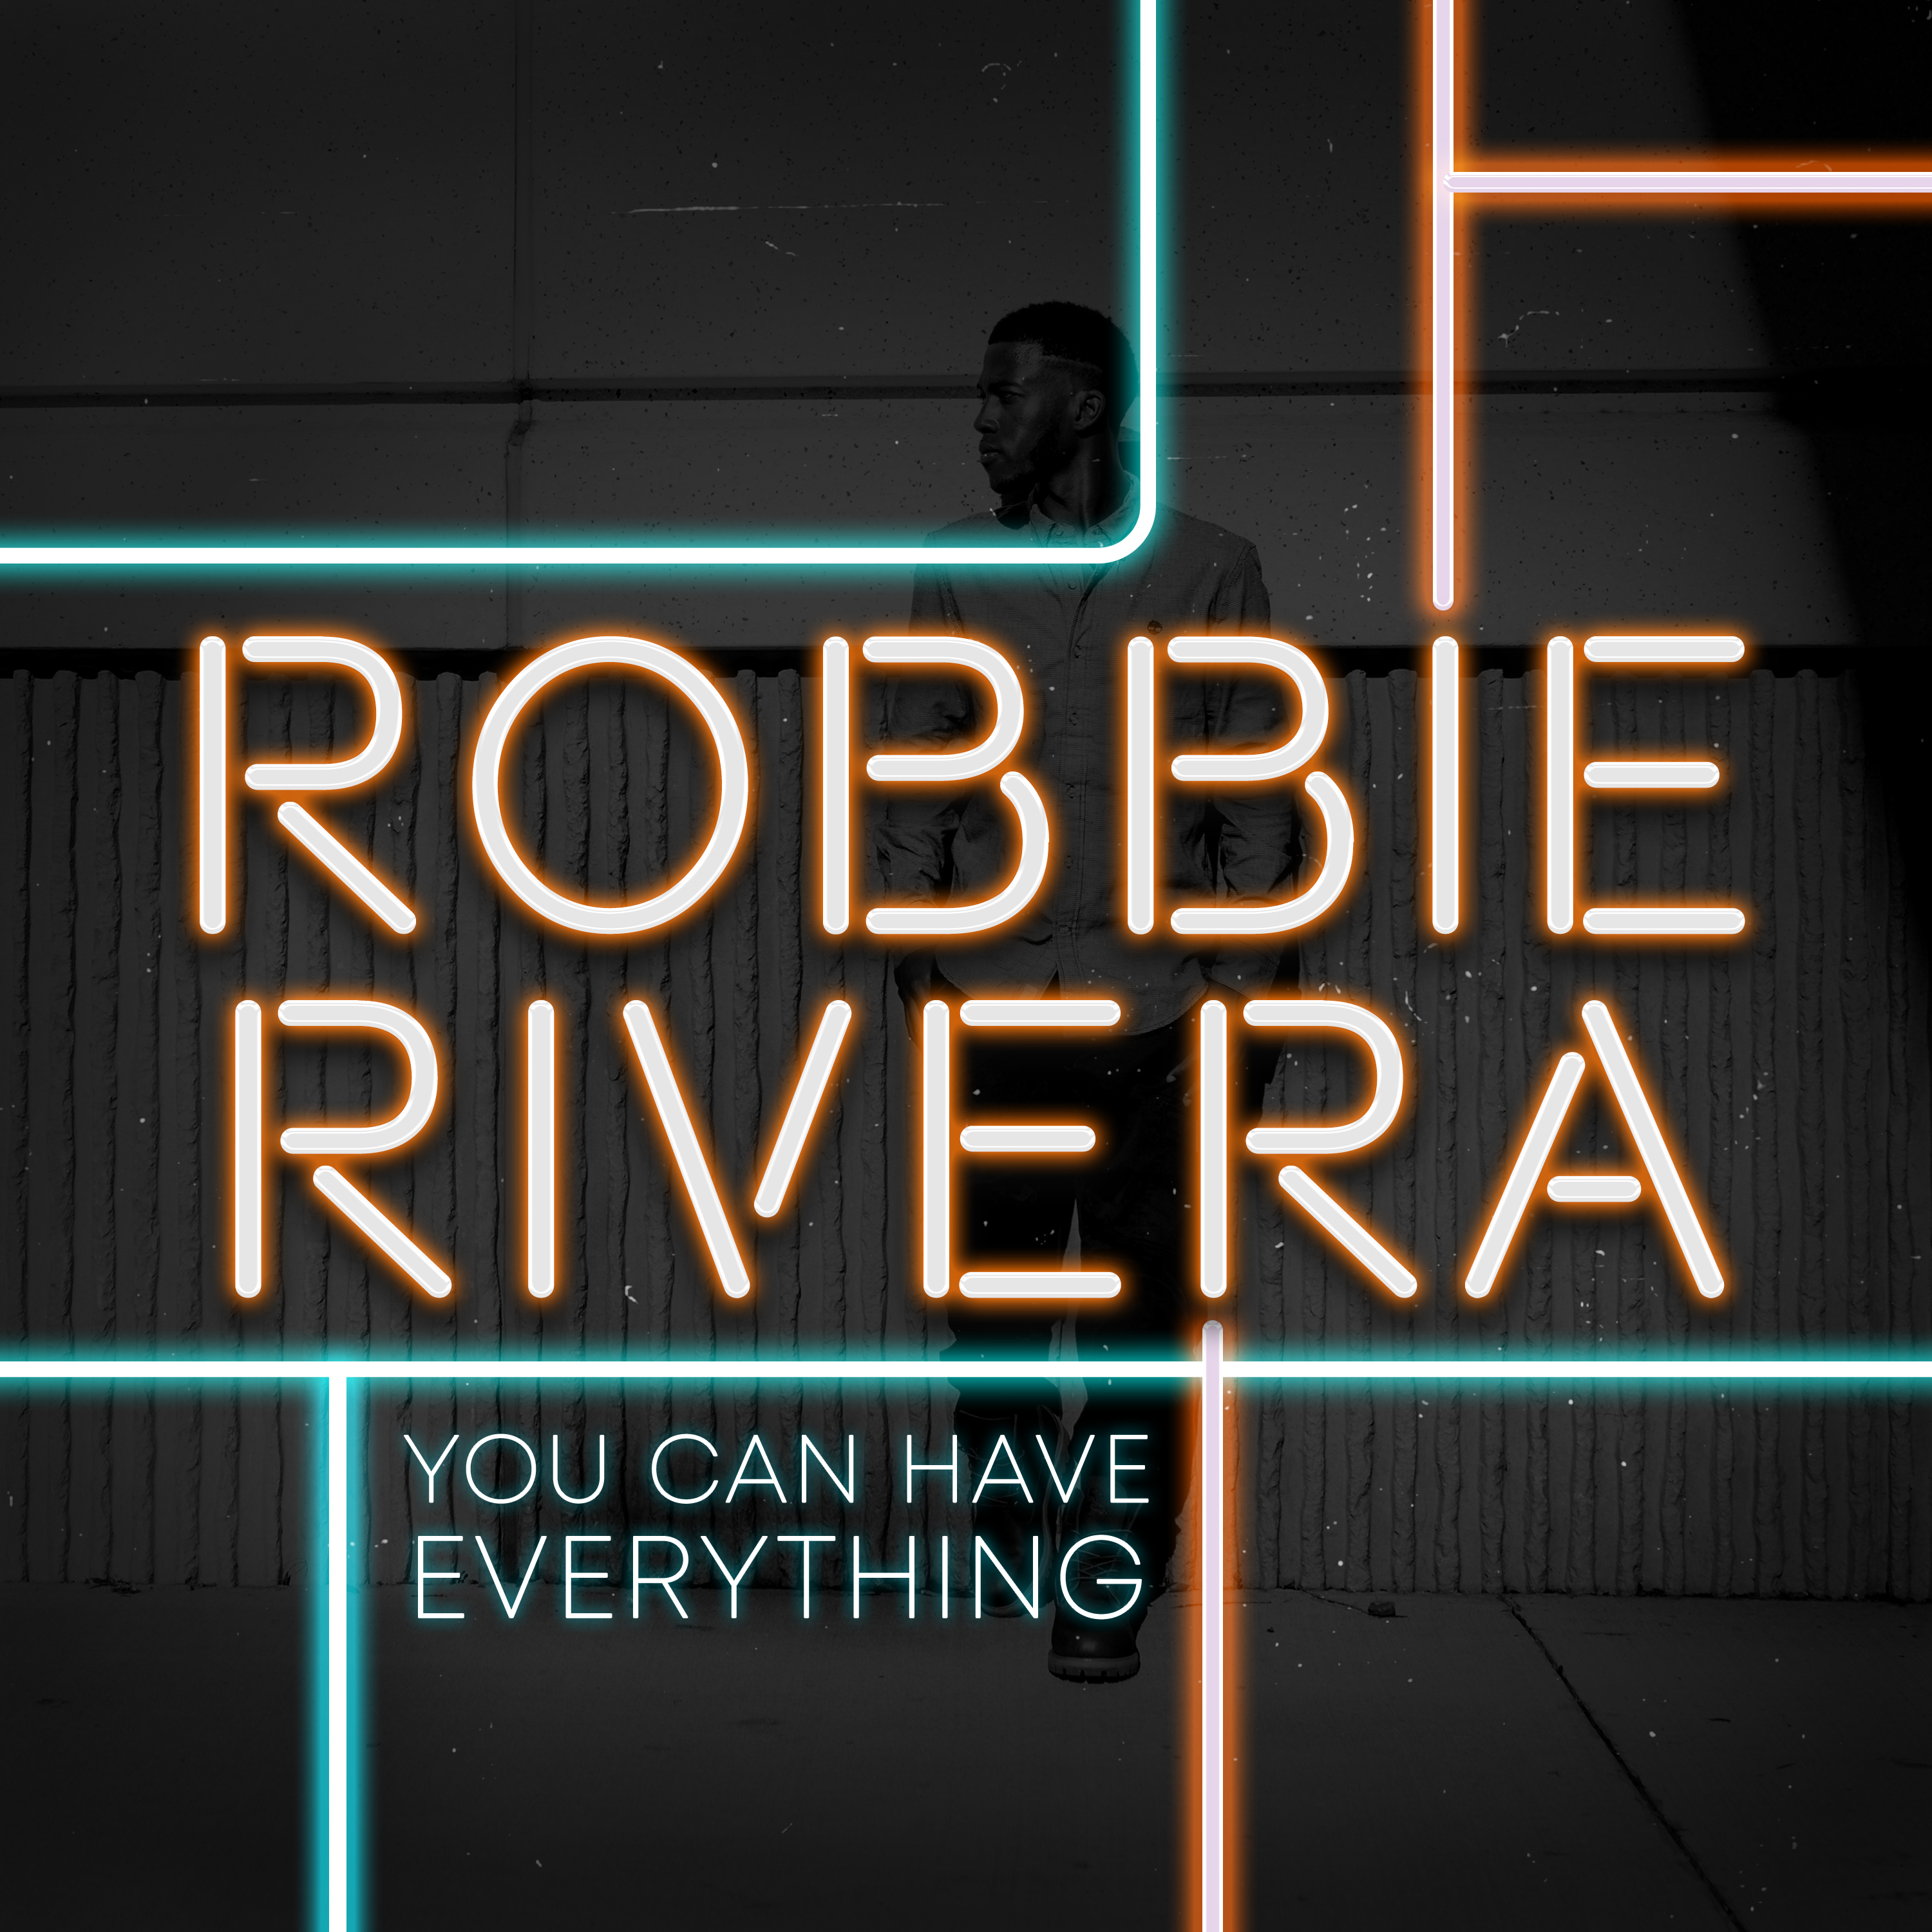 robbie_rivera_-_you_can_have_everything_-_artwork.jpg